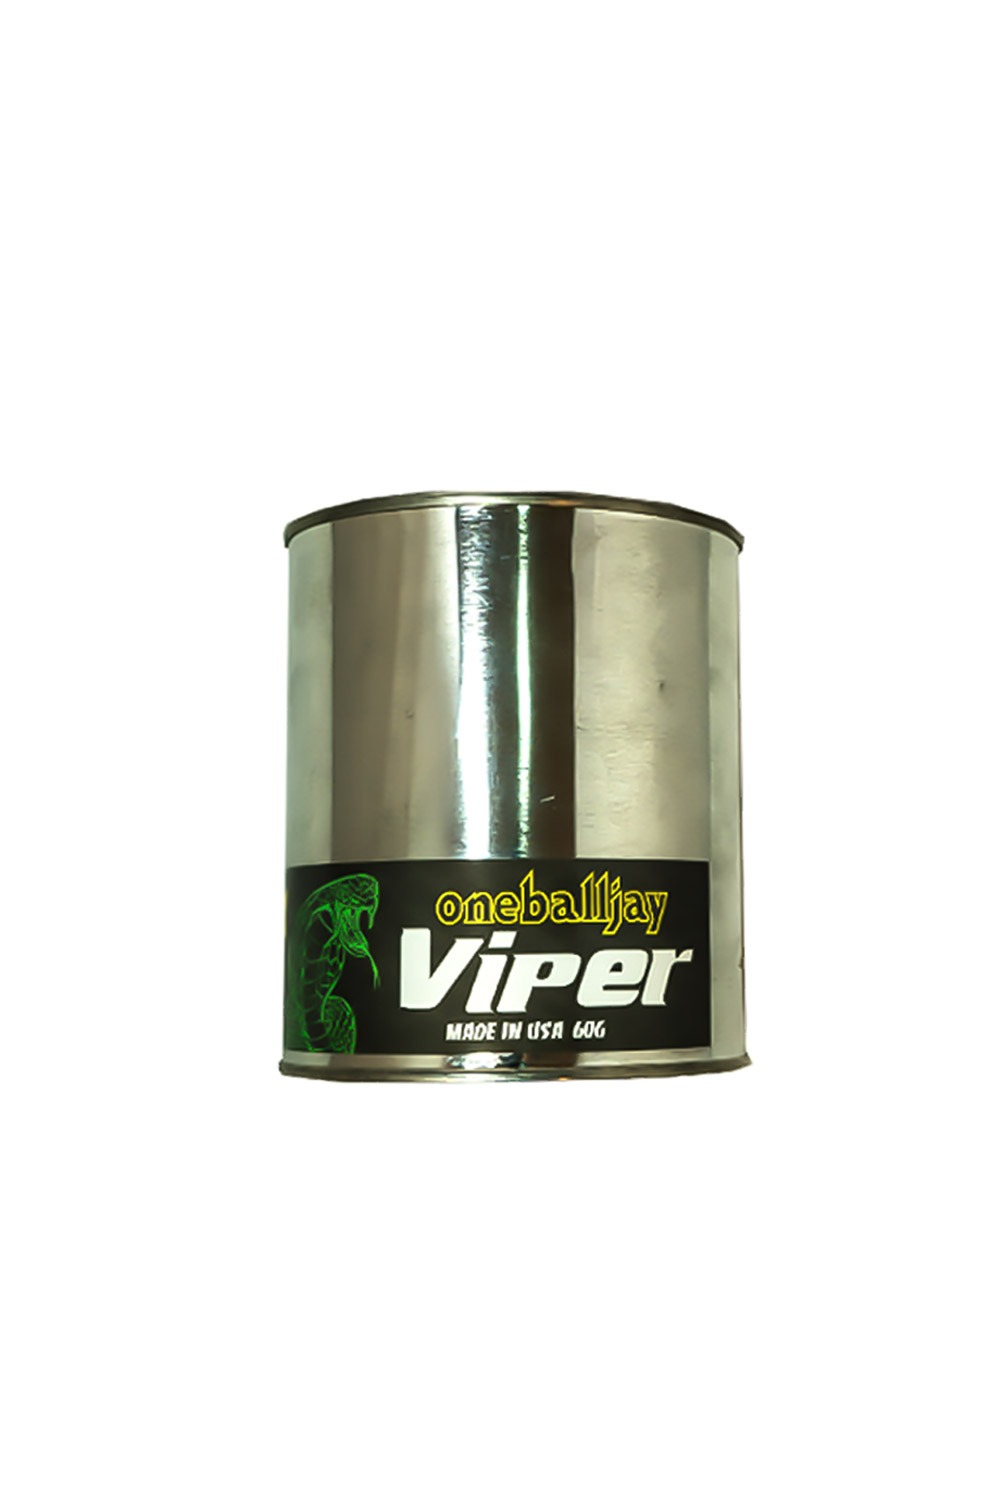 원볼 왁스_바이퍼 치약 왁스 PASTE QUART, 스틸 QUART/ONEBALL VIPER PASTE QUART/ONEBALL VIPER PASTE QUART/STEEL QUART_HOB72200